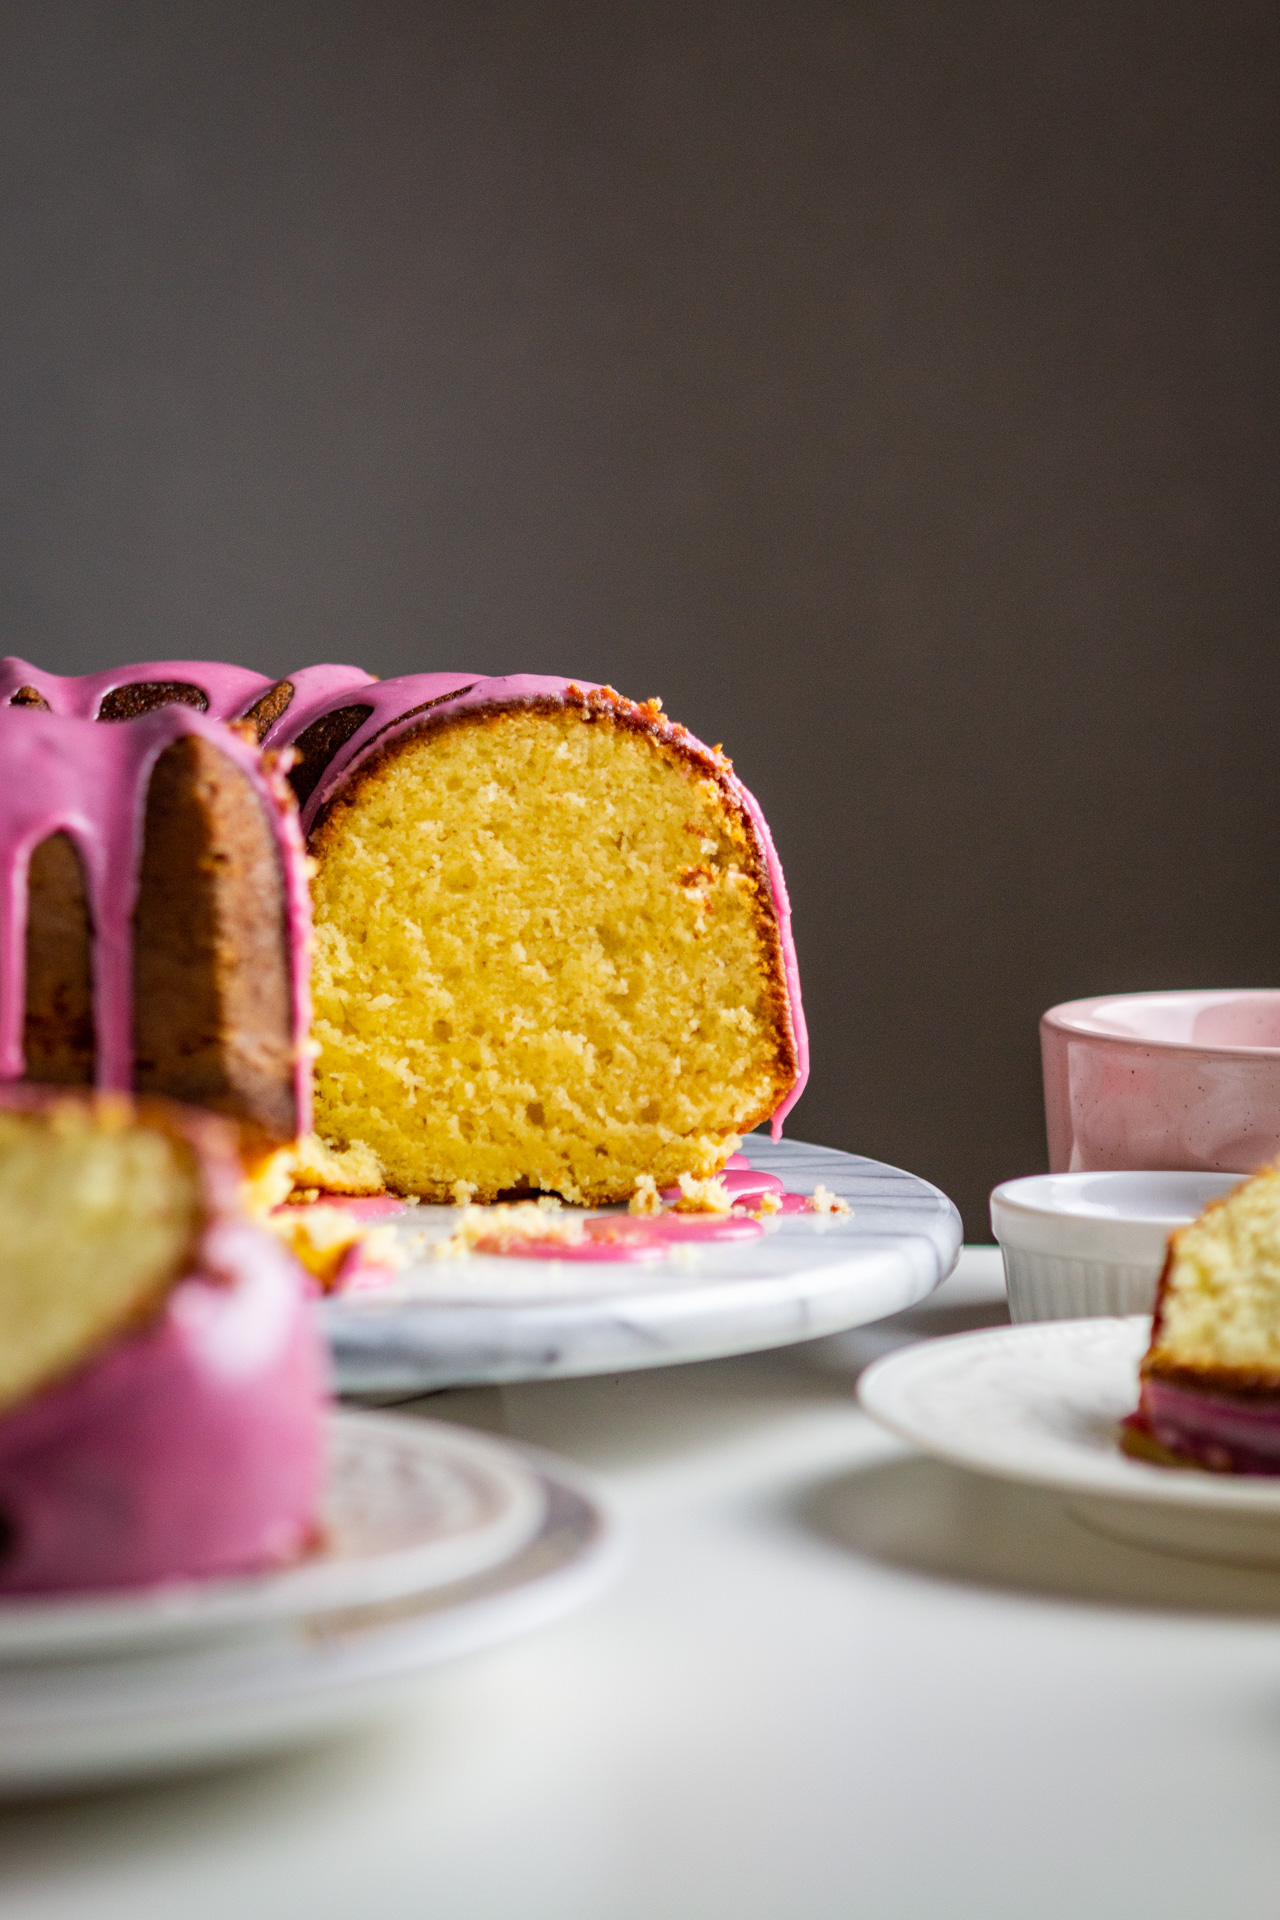 blood-orange-bundt-cake45.jpg